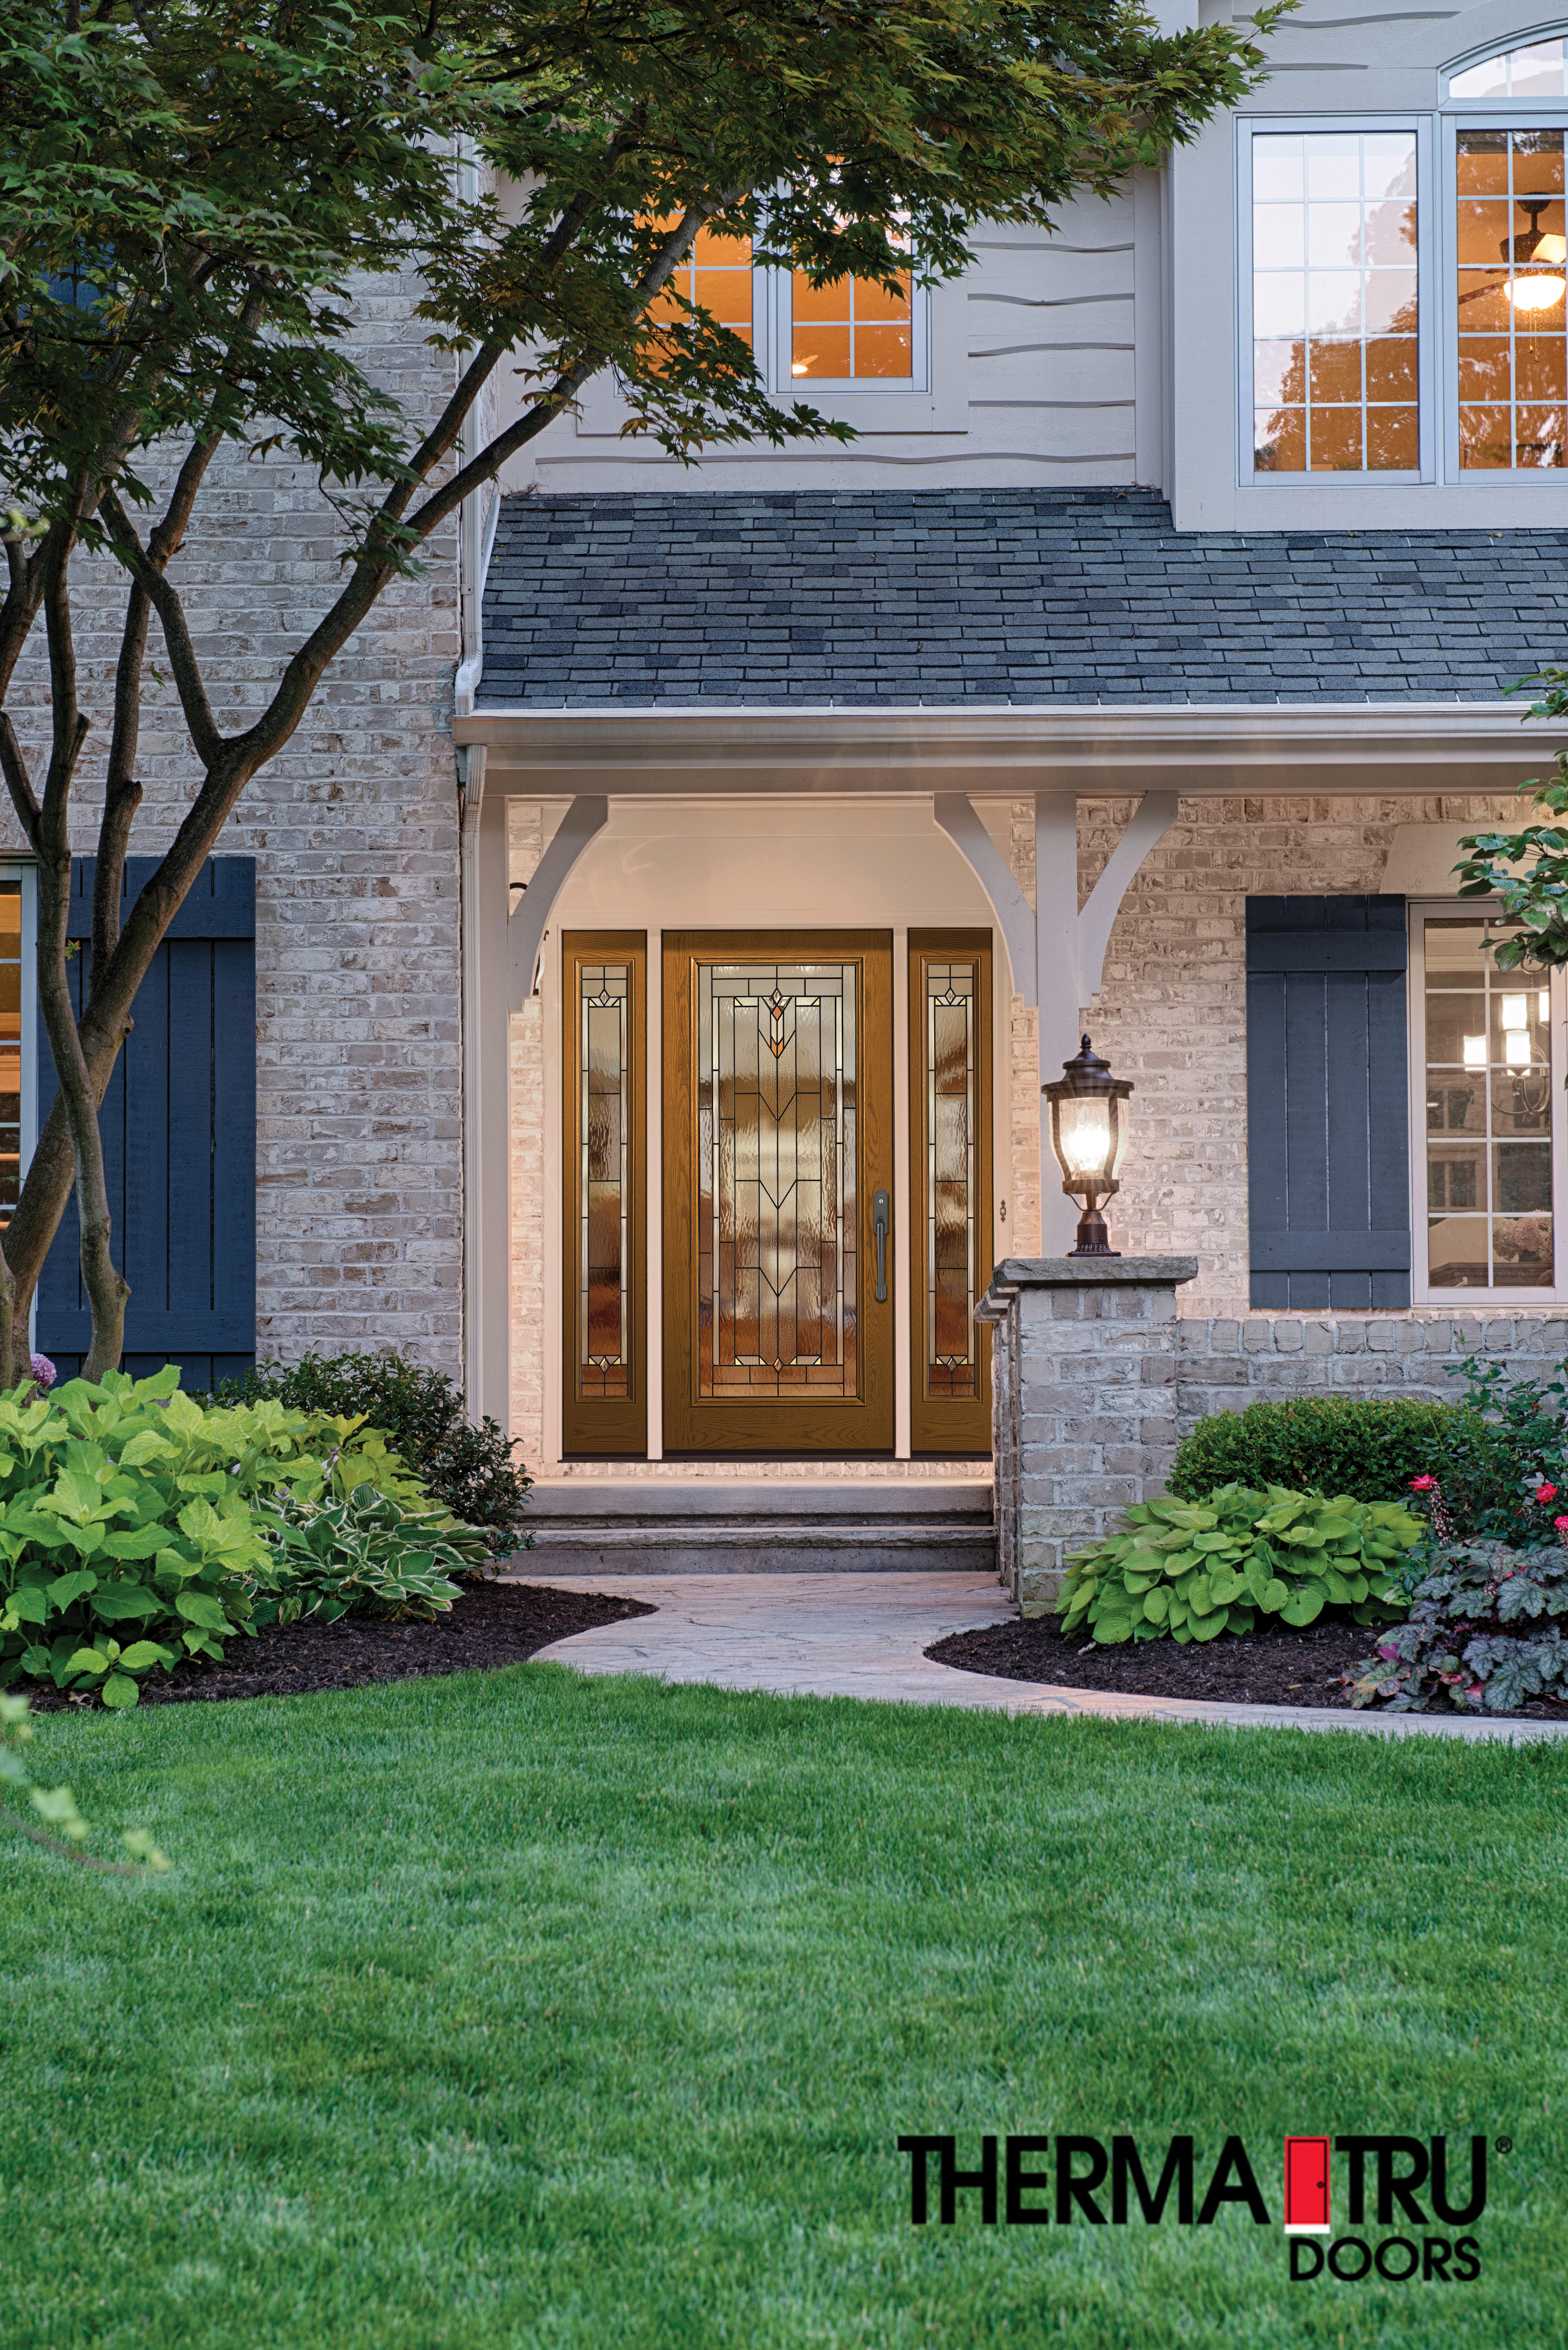 Exterior glass door on colonial style house